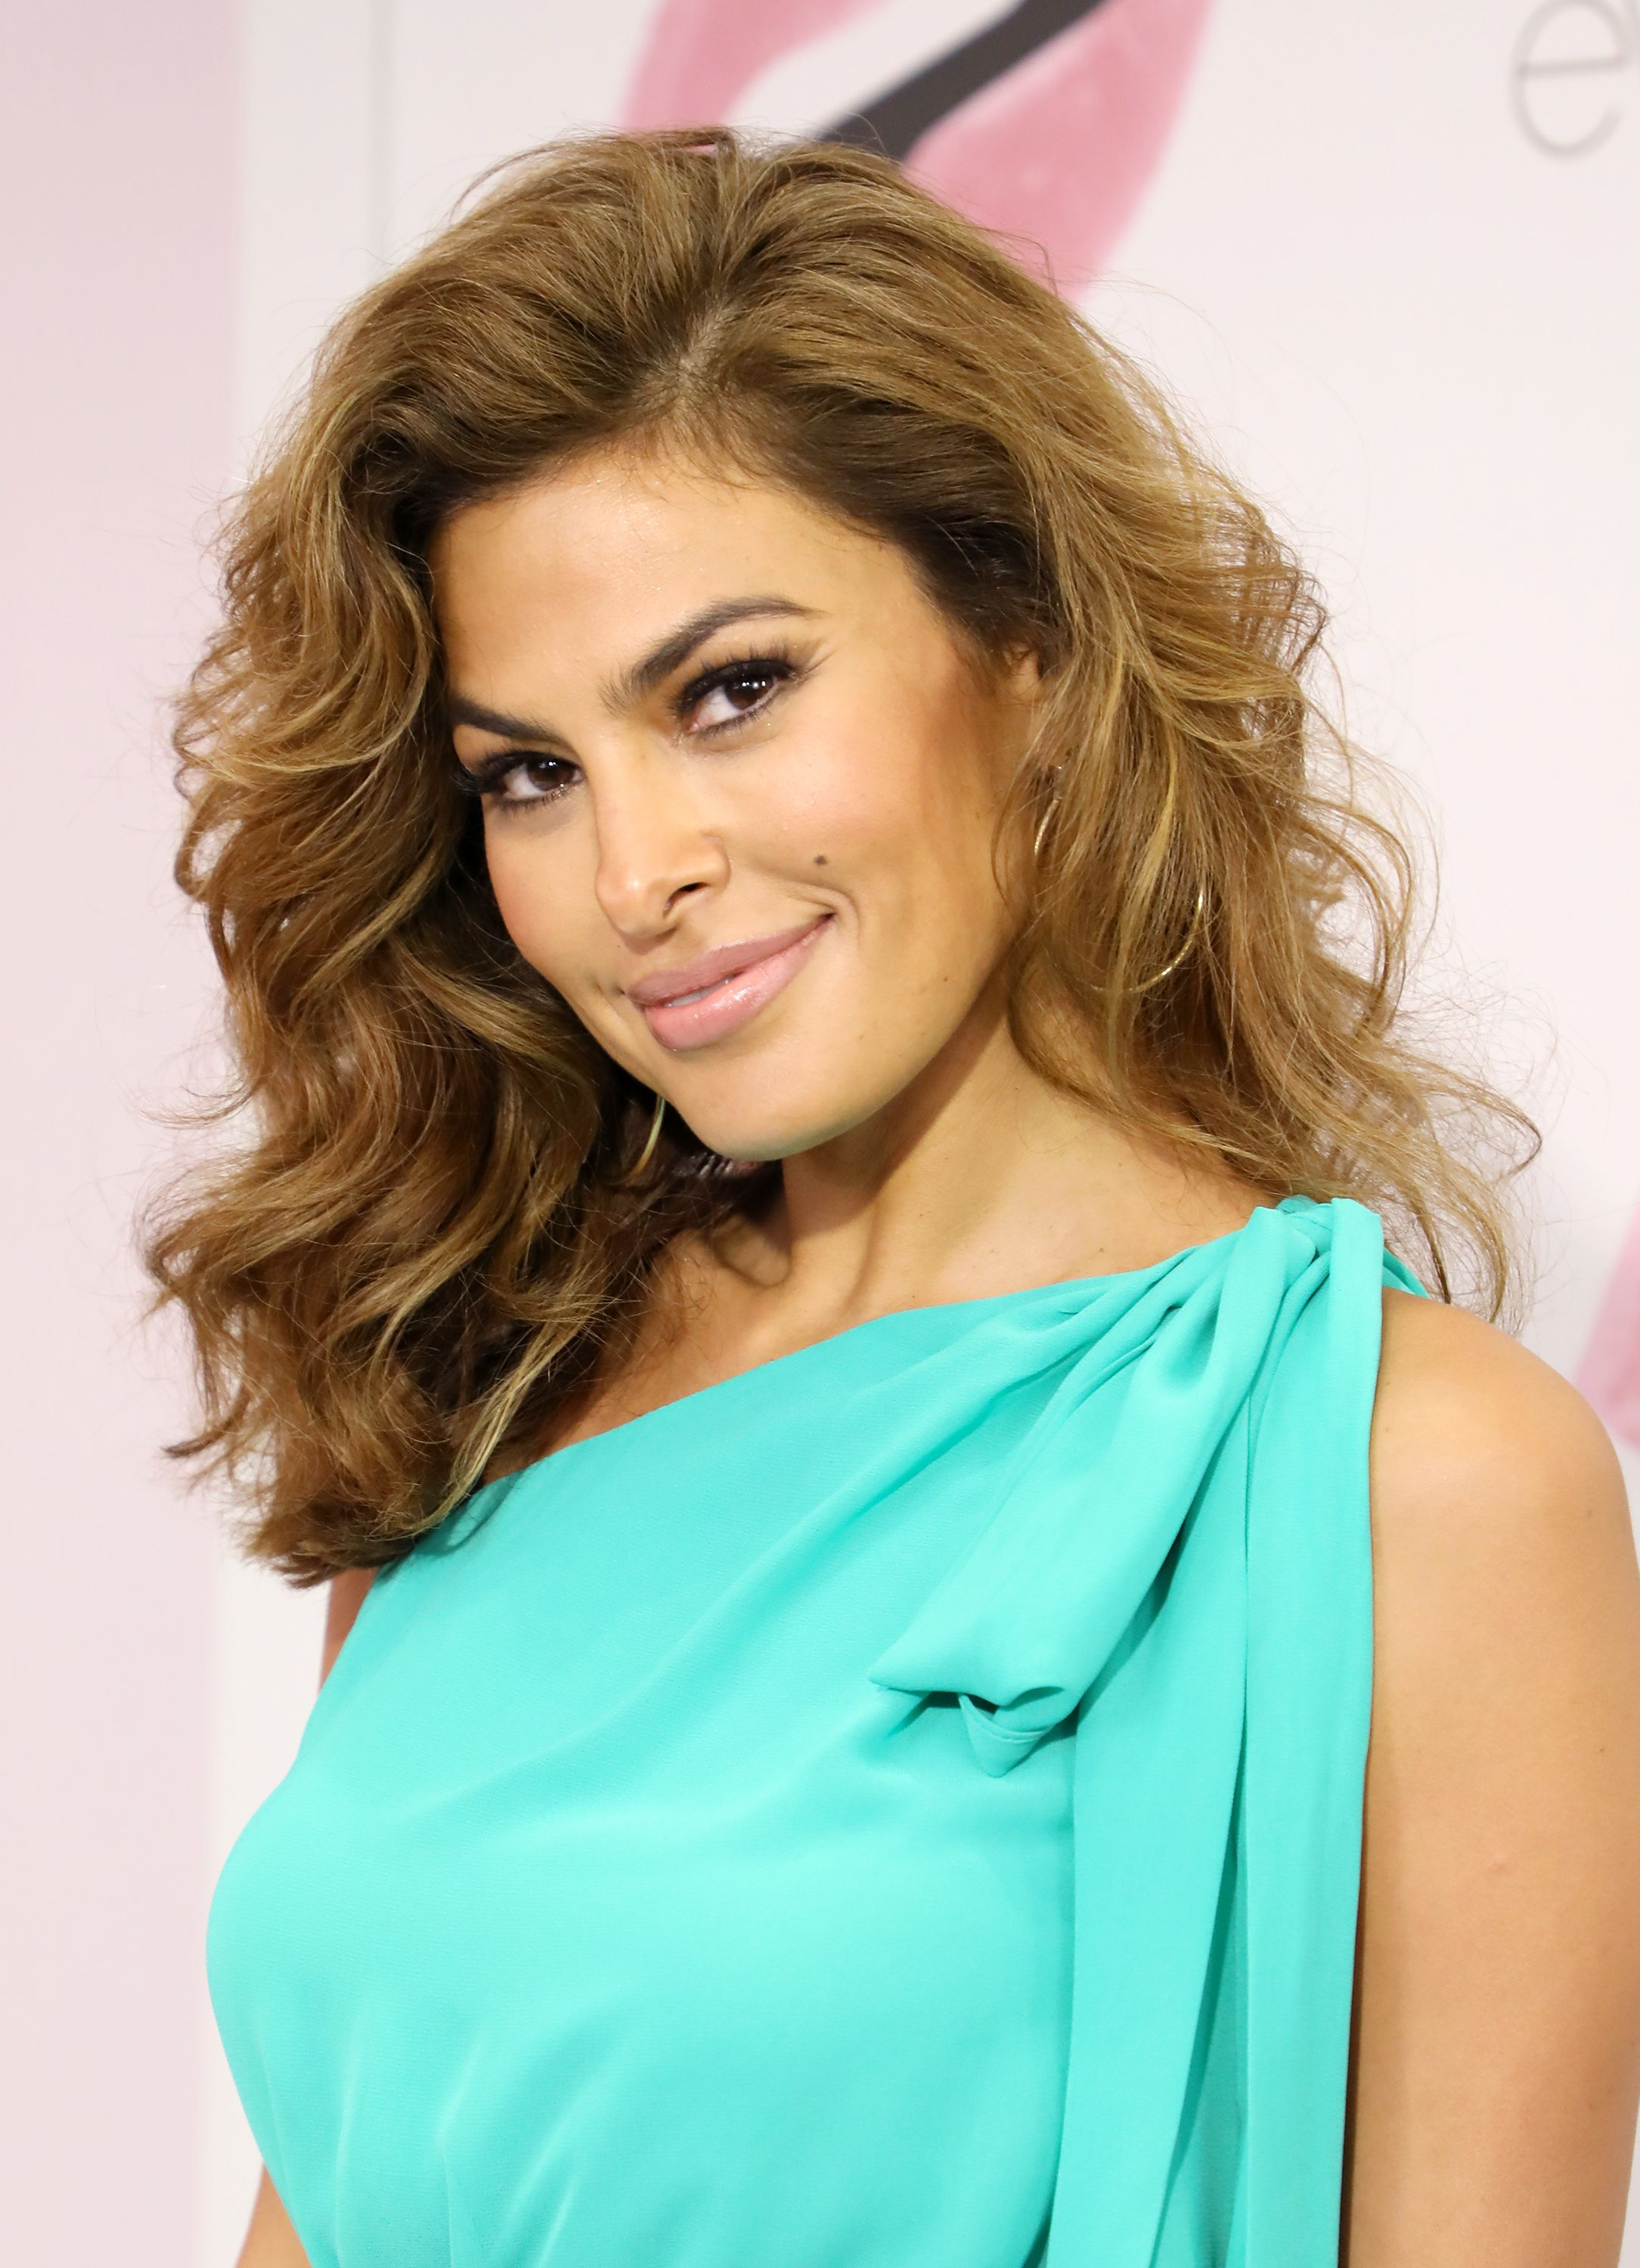 Eva Mendes Just Posted A Hilarious No-Makeup-Look Selfie